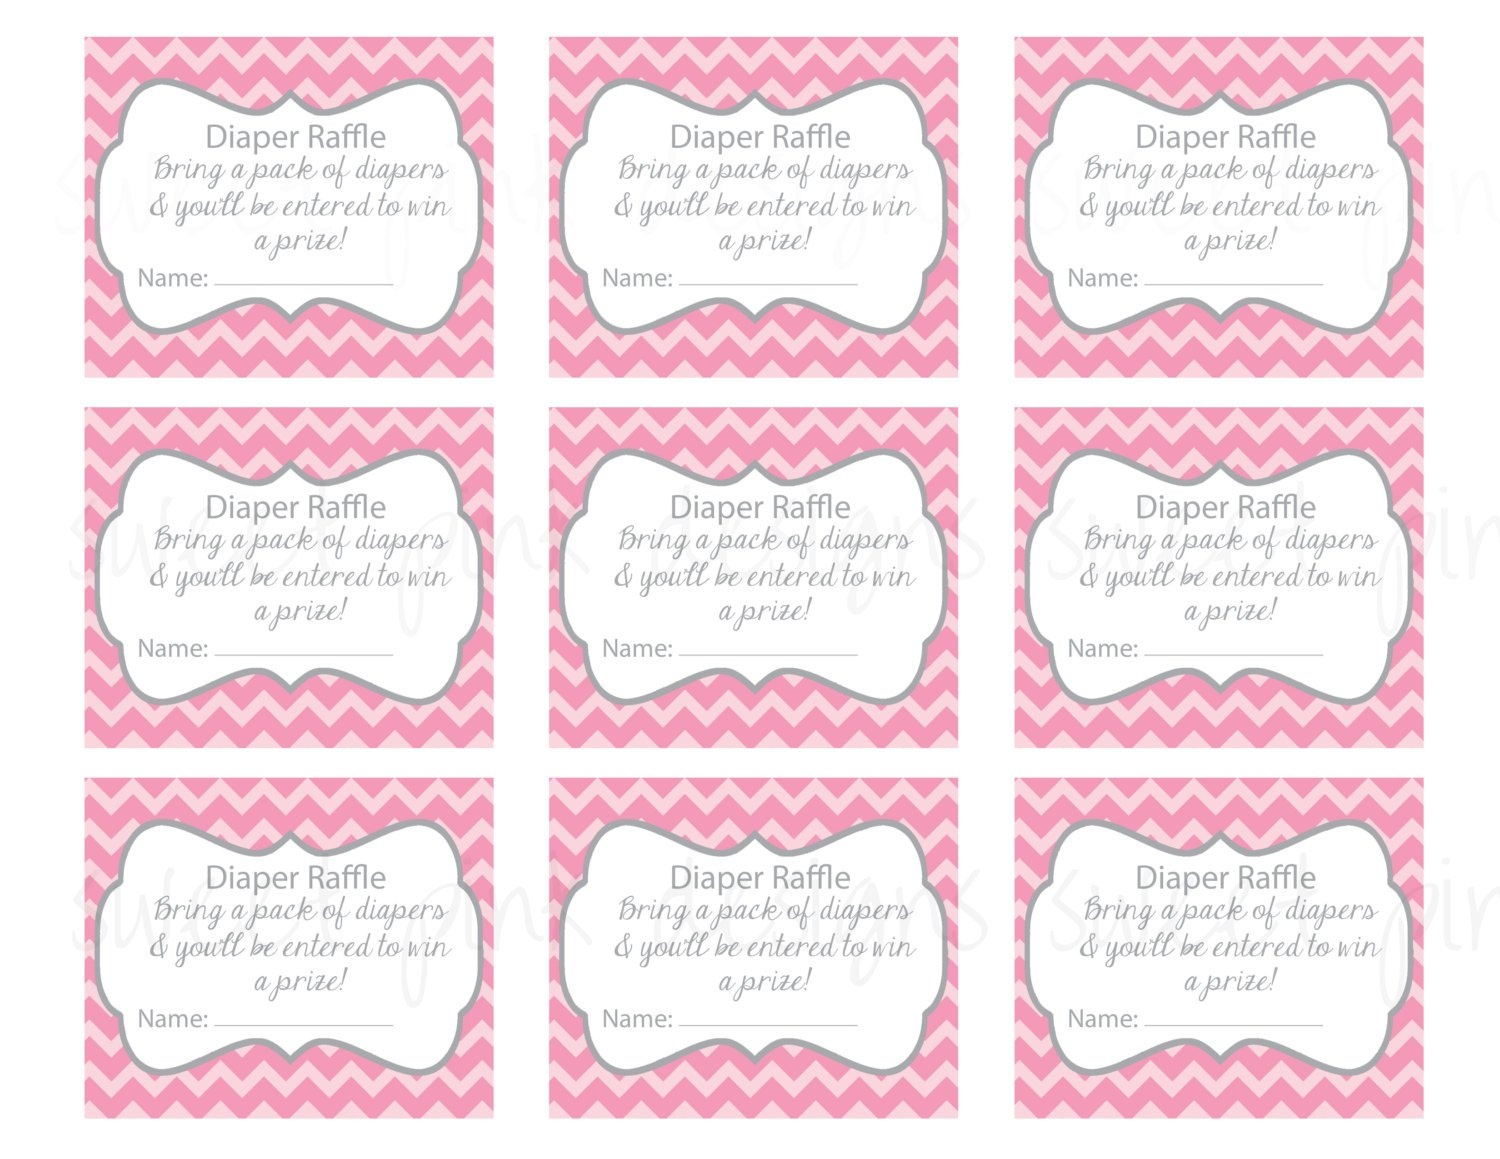 Printable Raffle Tickets Template. Sample Printable Raffle Ticket - Free Printable Bridal Shower Raffle Tickets